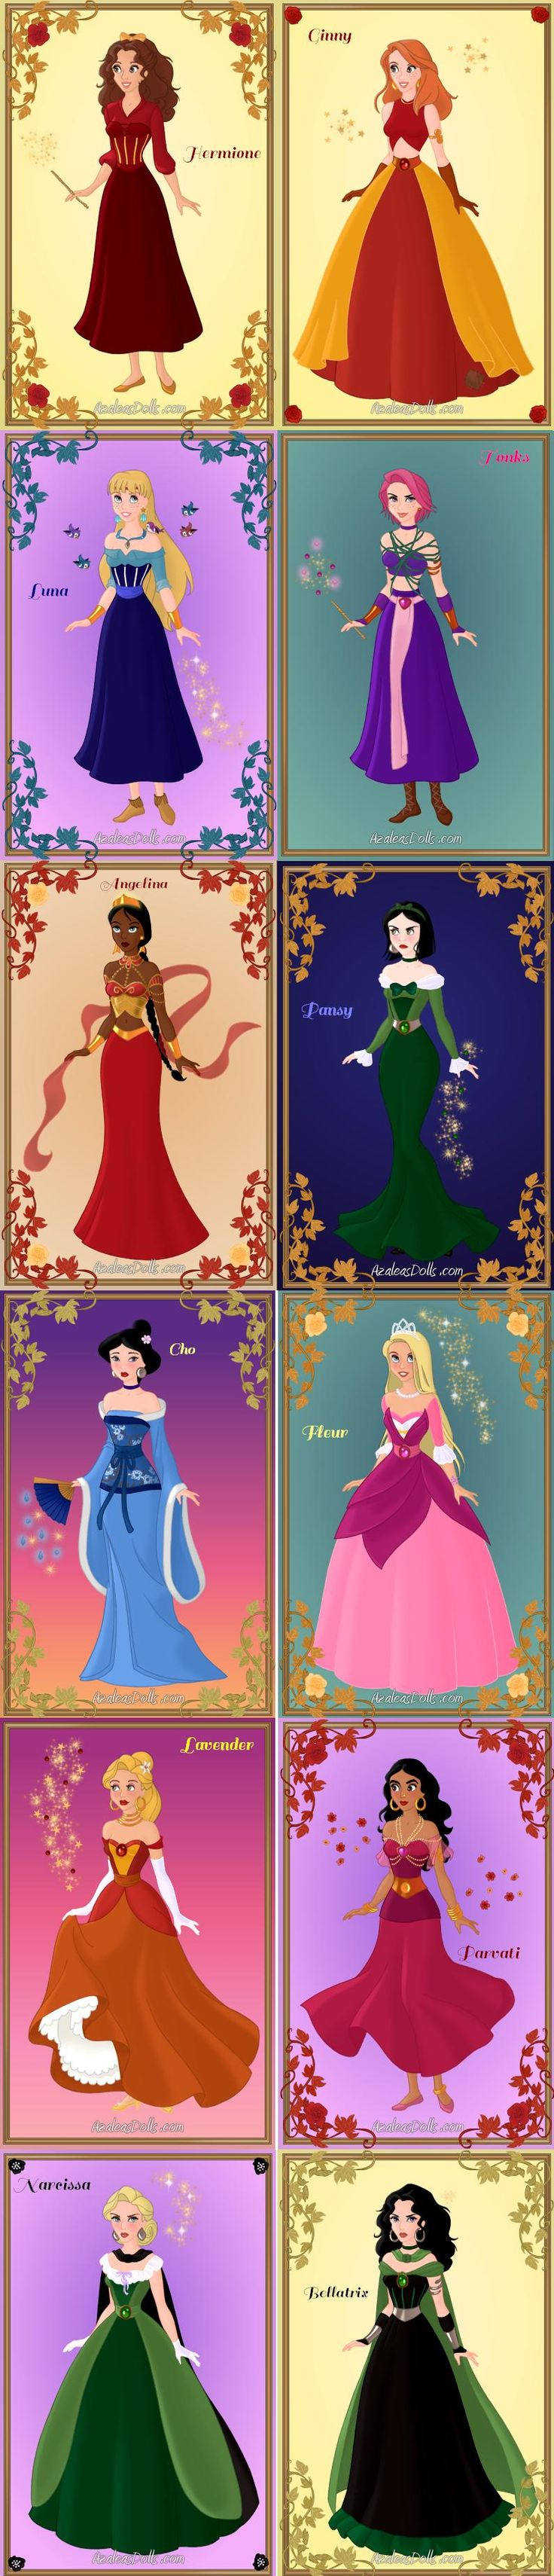 Harry Potter witches reimagined as Disney characters!